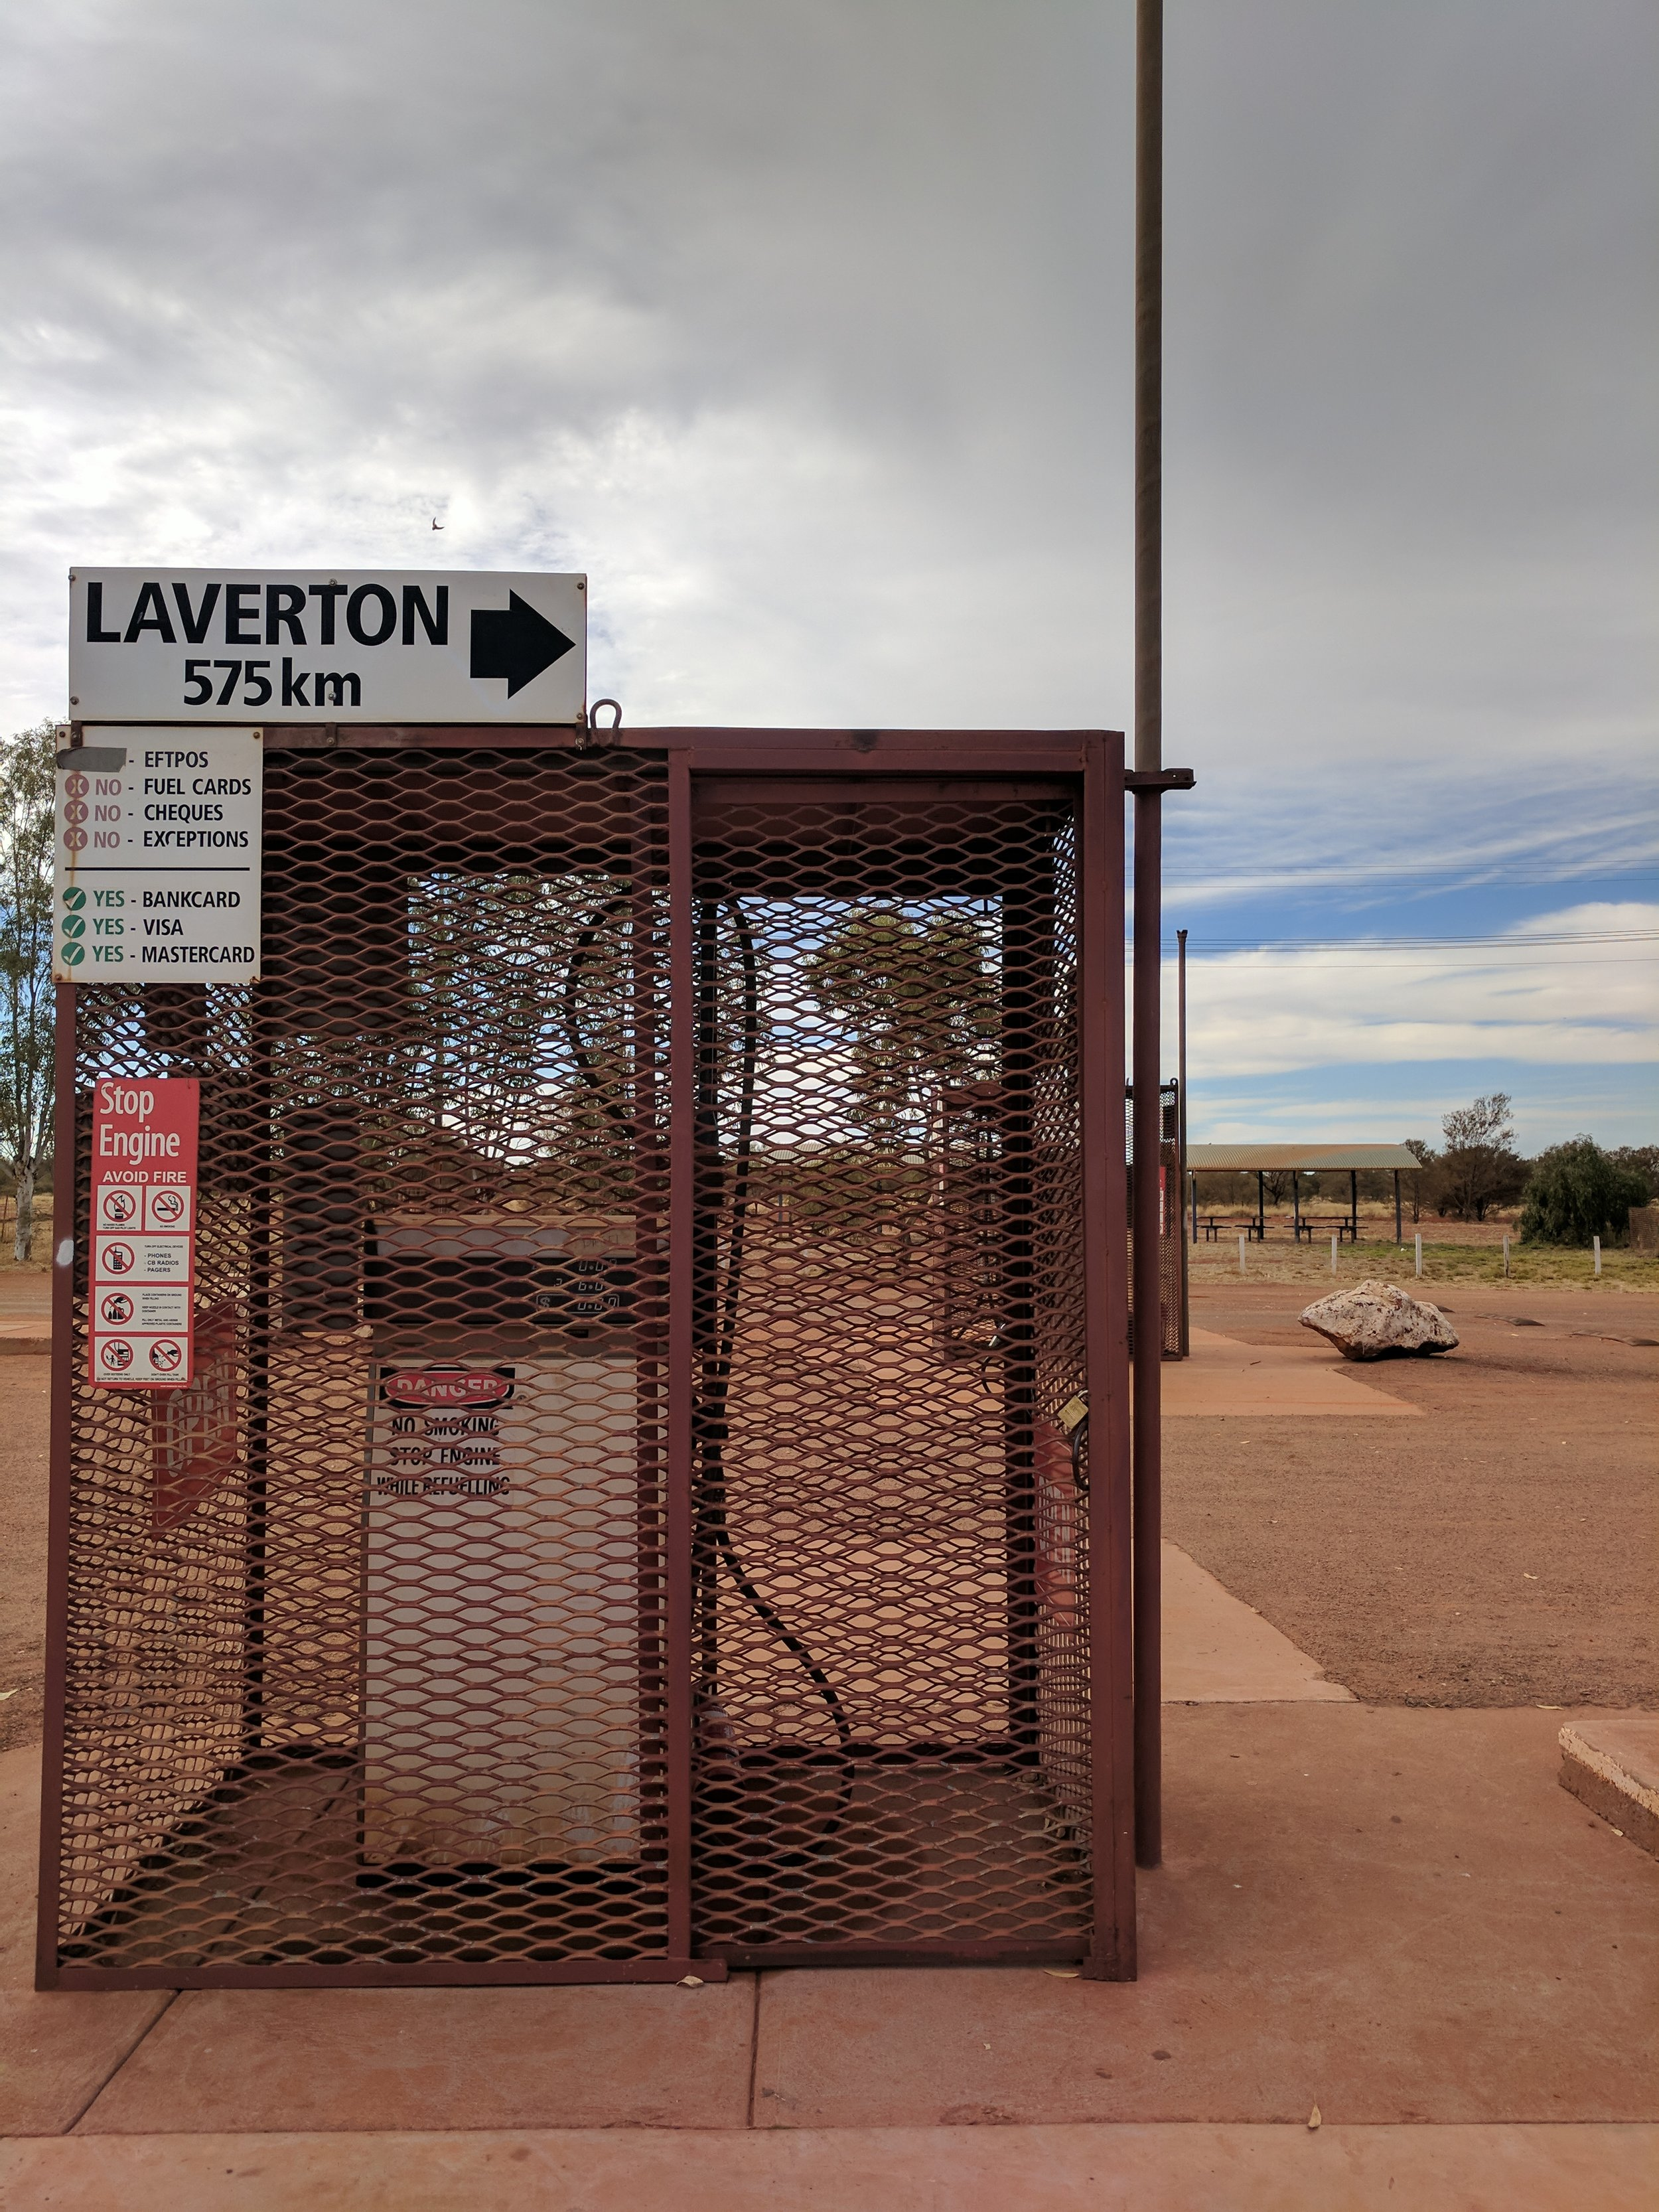 'Warburton Cage style' transcends to petrol pumps too. Unlocked, administered and always attended by a roadhouse worker